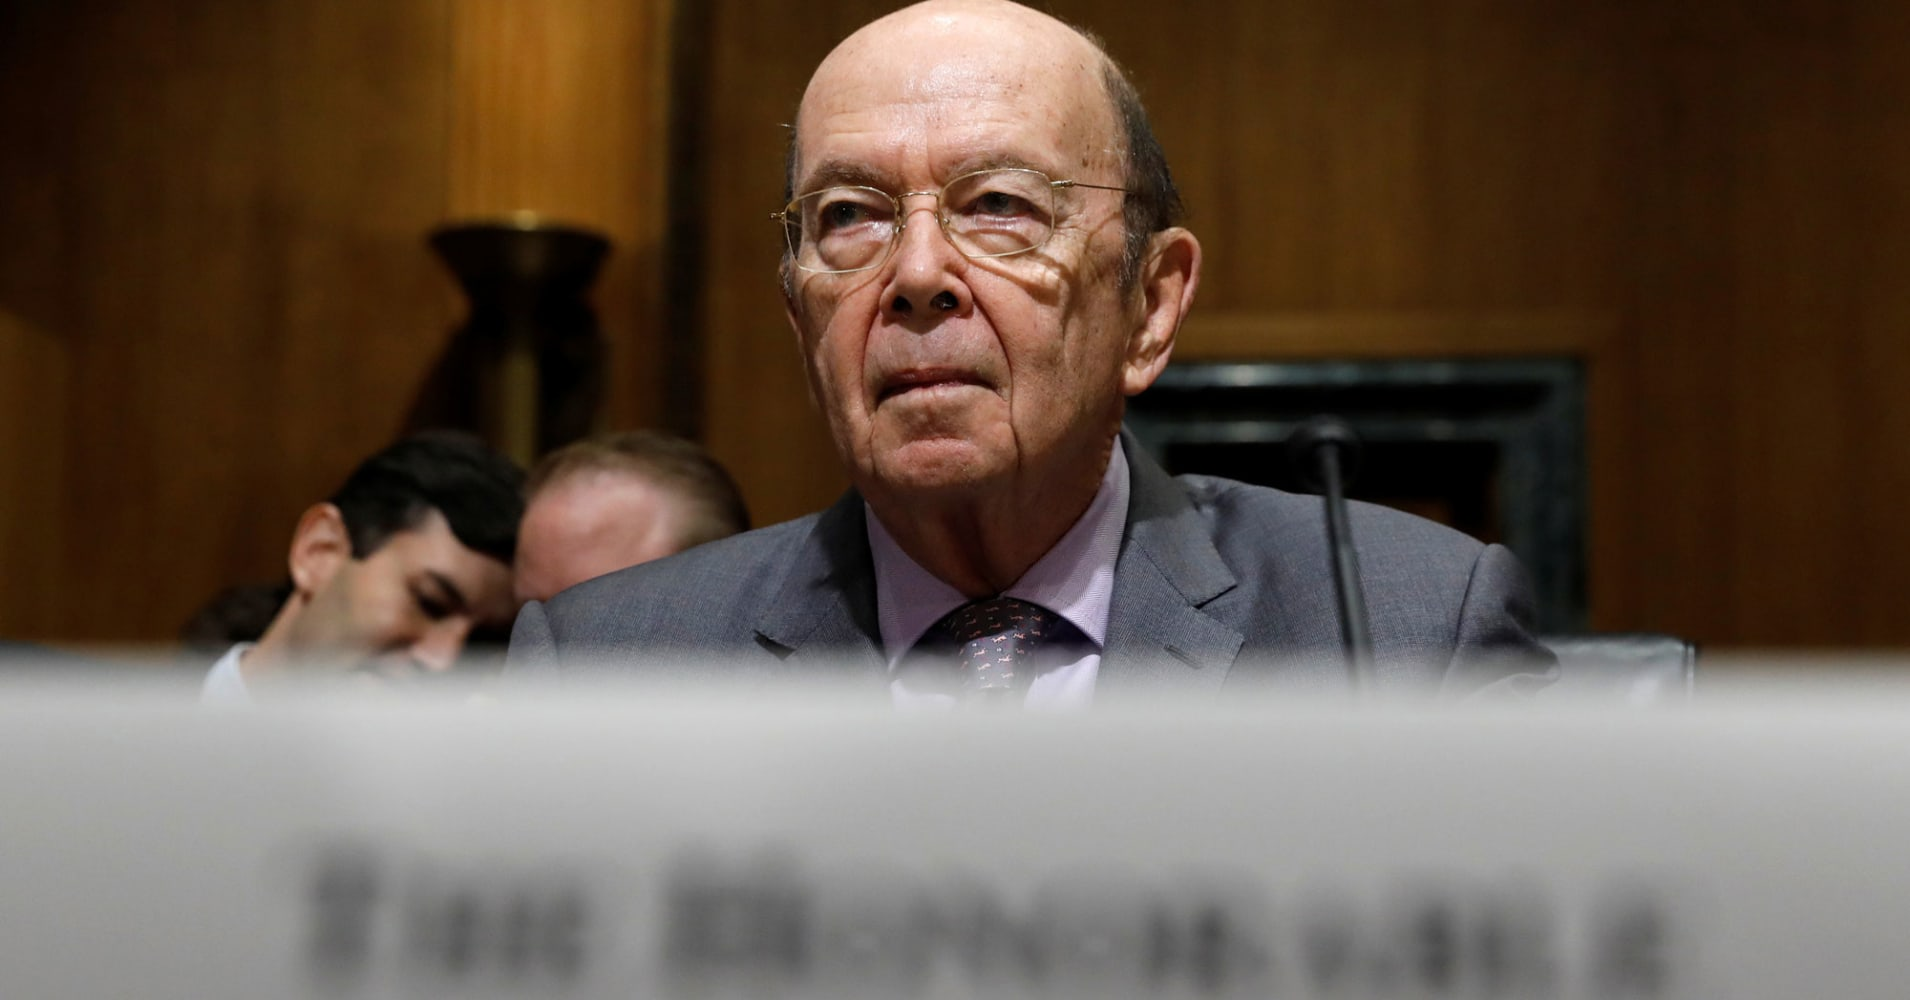 Wilbur Ross to testify to Congress in March about census question